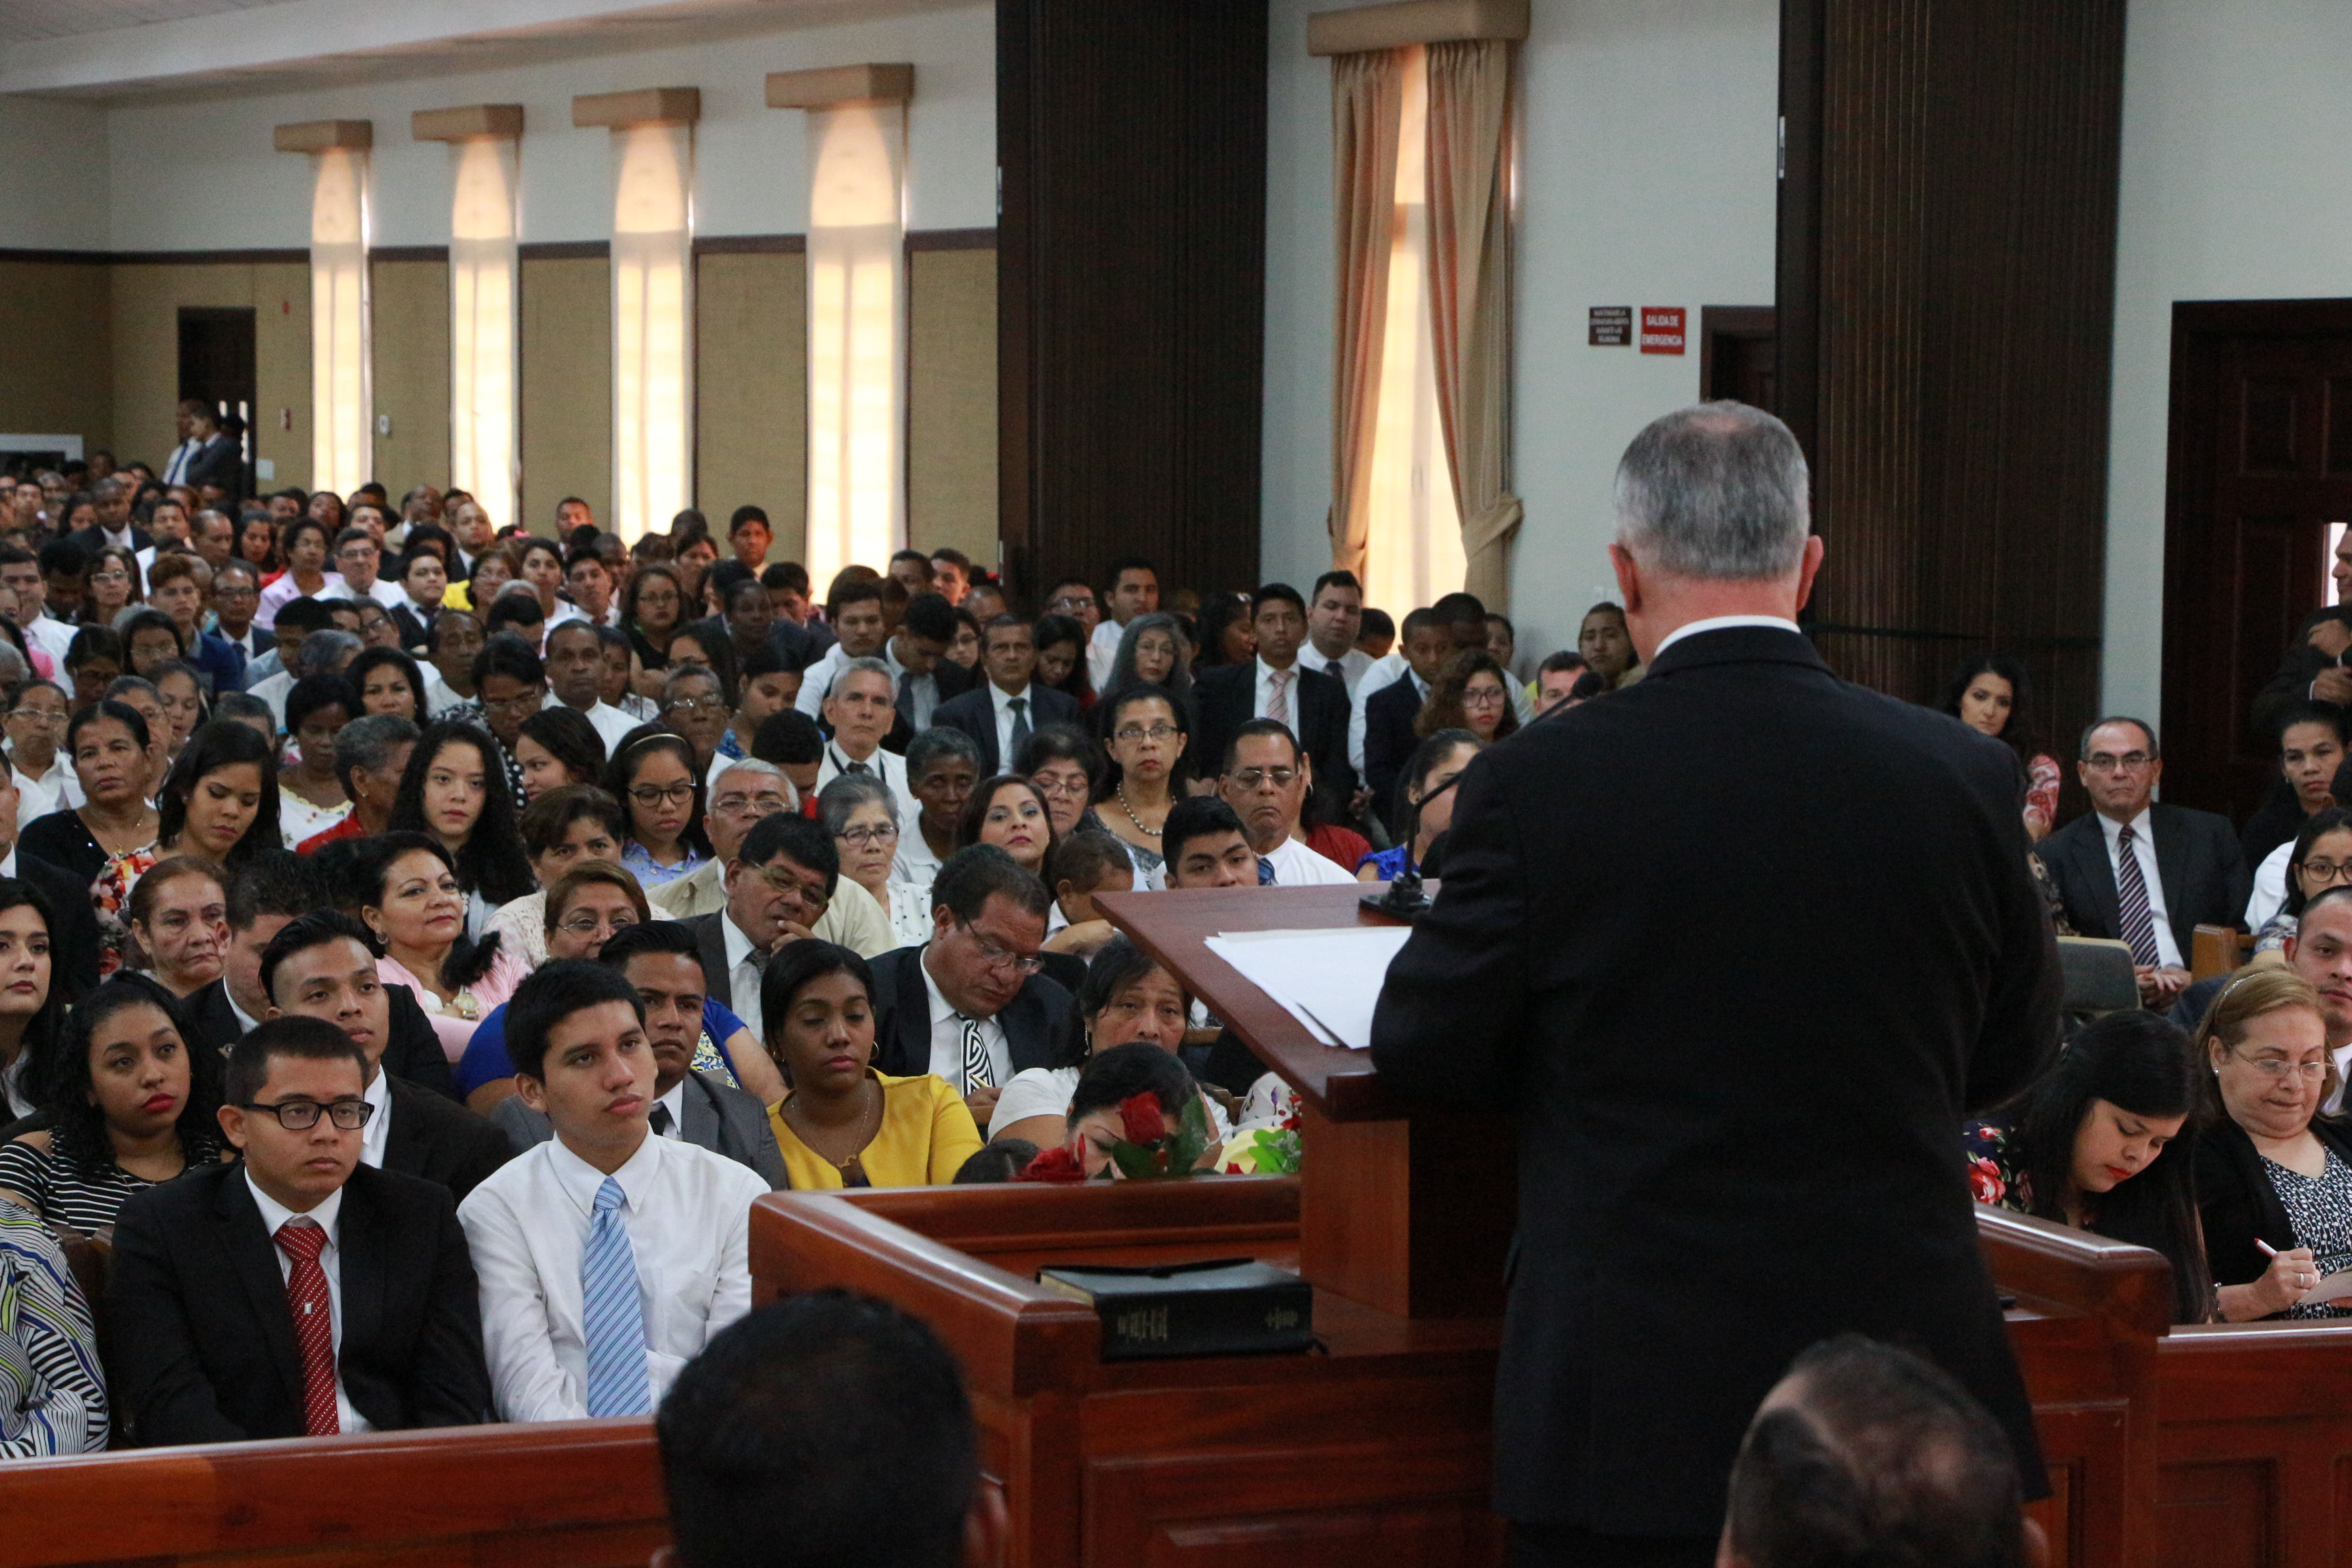 Elder Ulisses Soares of the Quorum of the Twelve Apostles speaks to members in Panama.